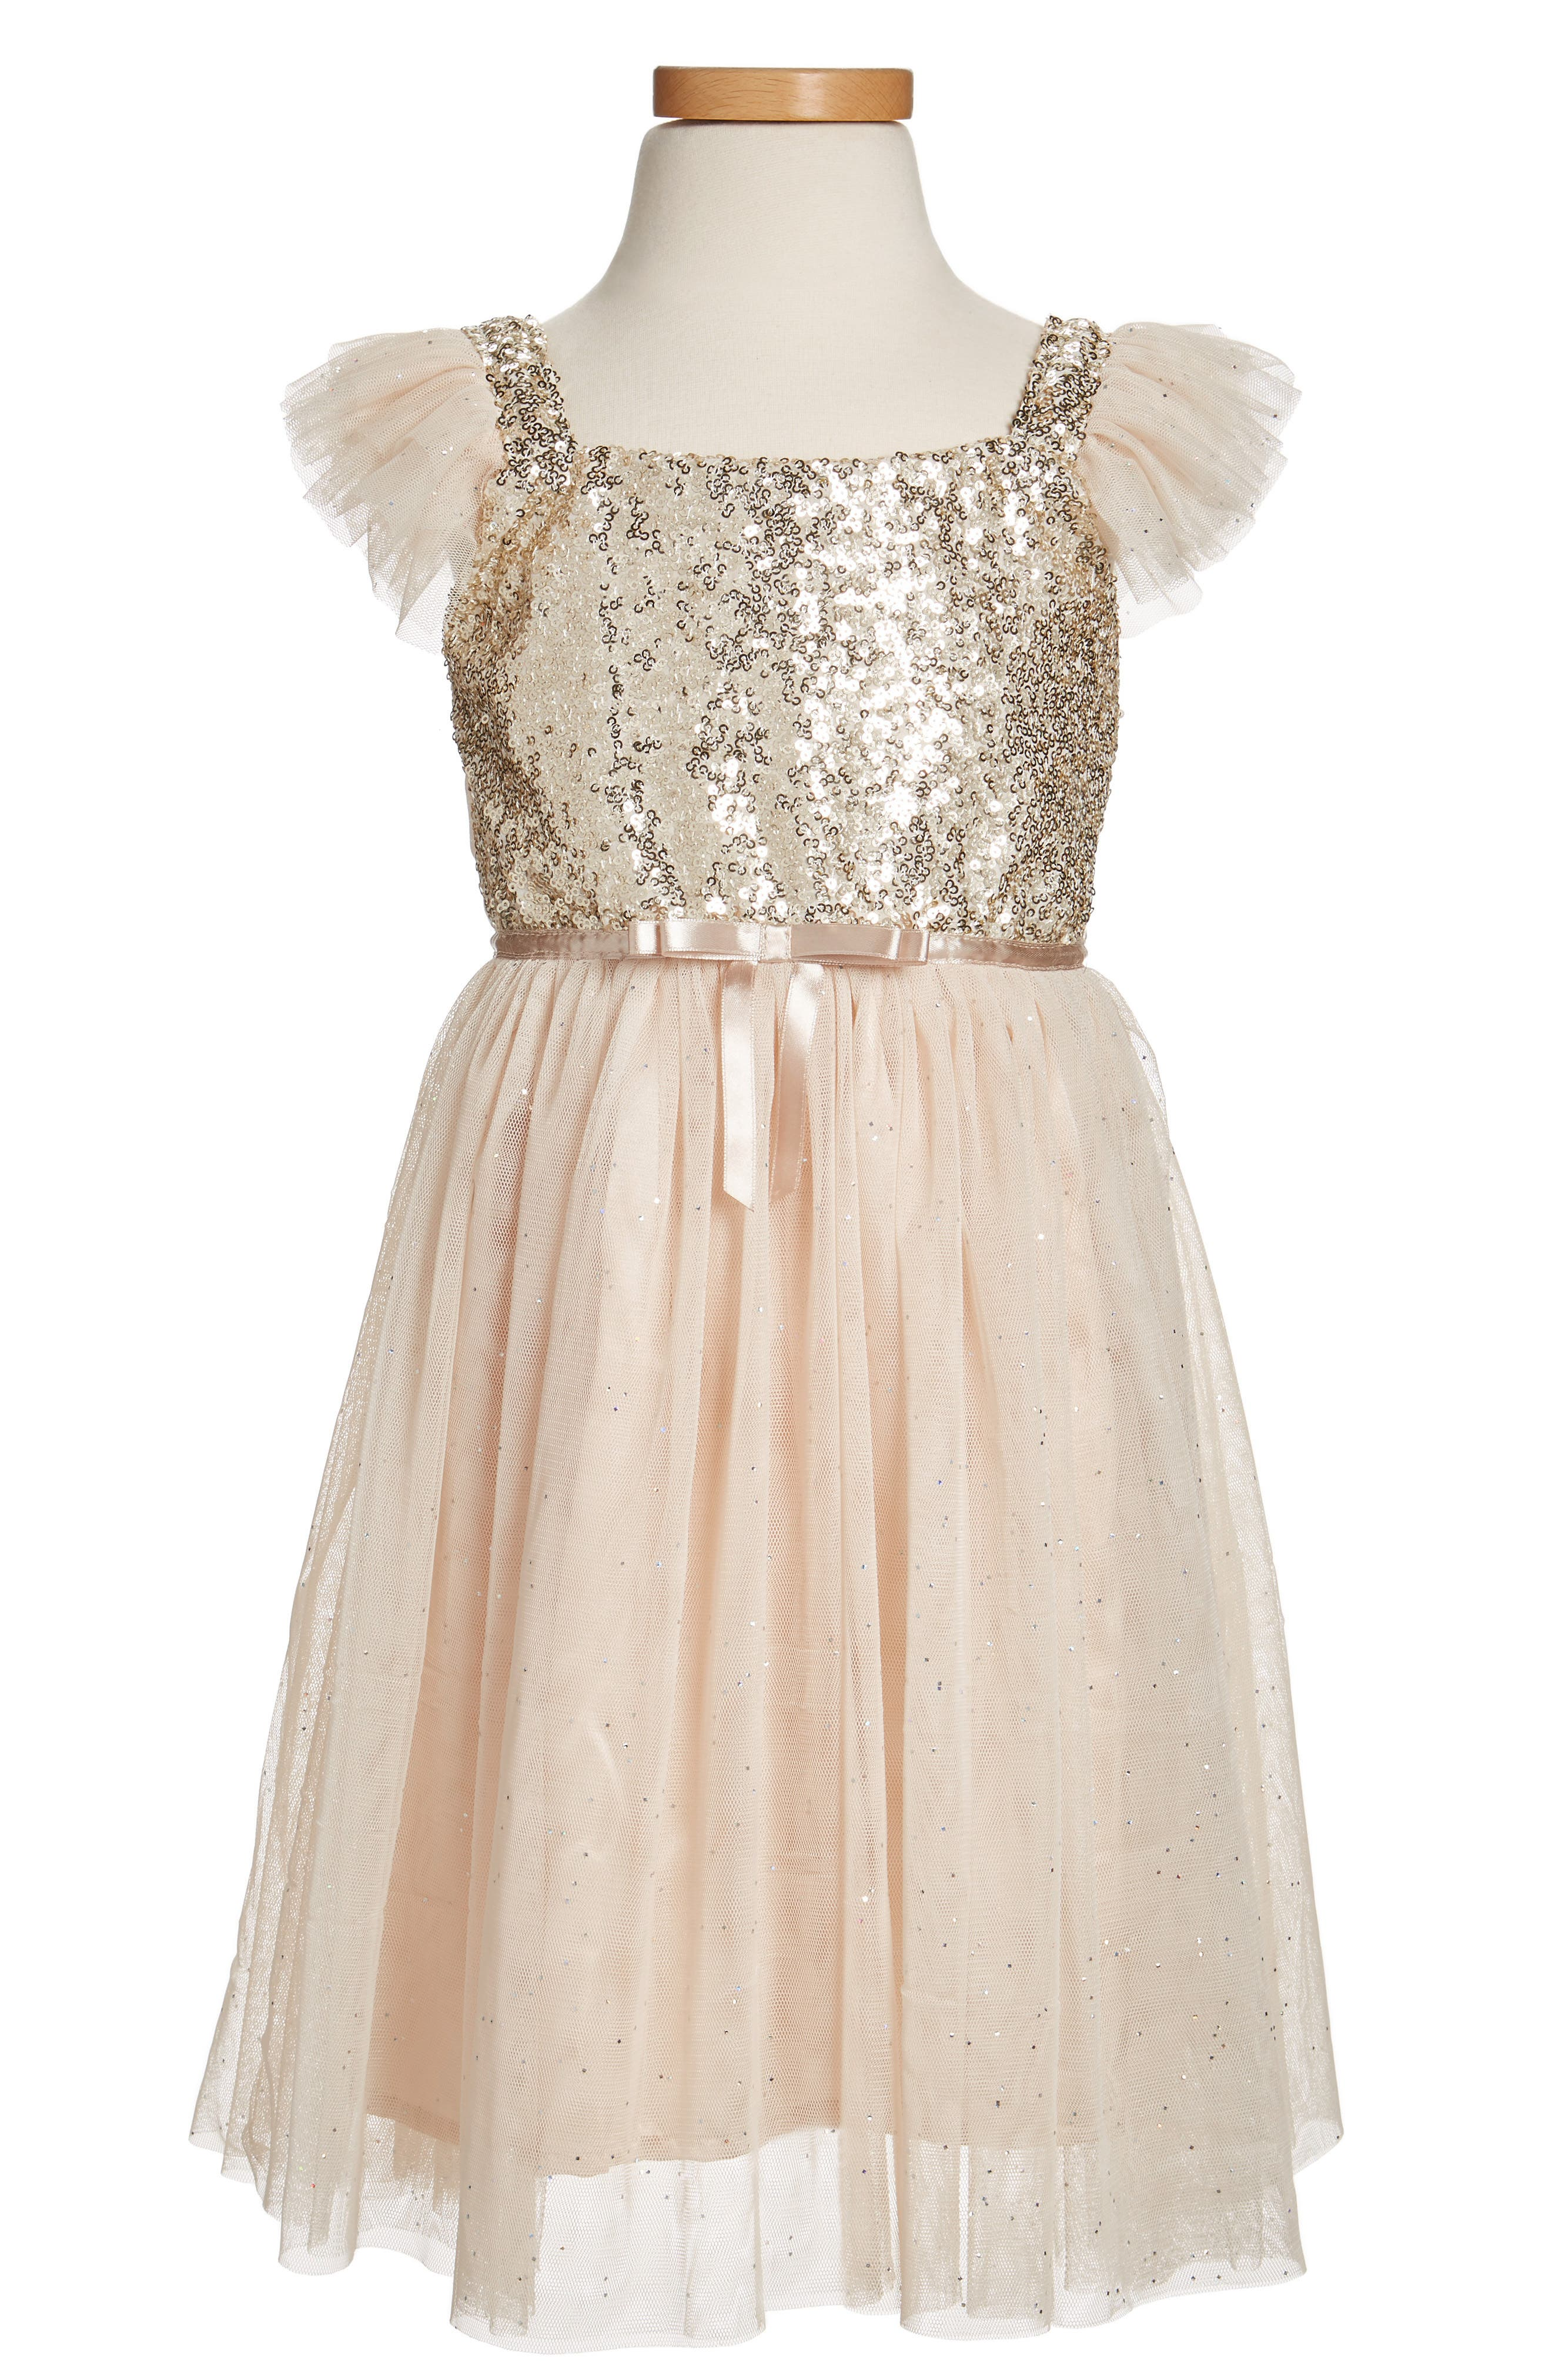 Main Image - Popatu Sequin Bodice Tulle Dress (Toddler Girls, Little Girls & Big Girls)